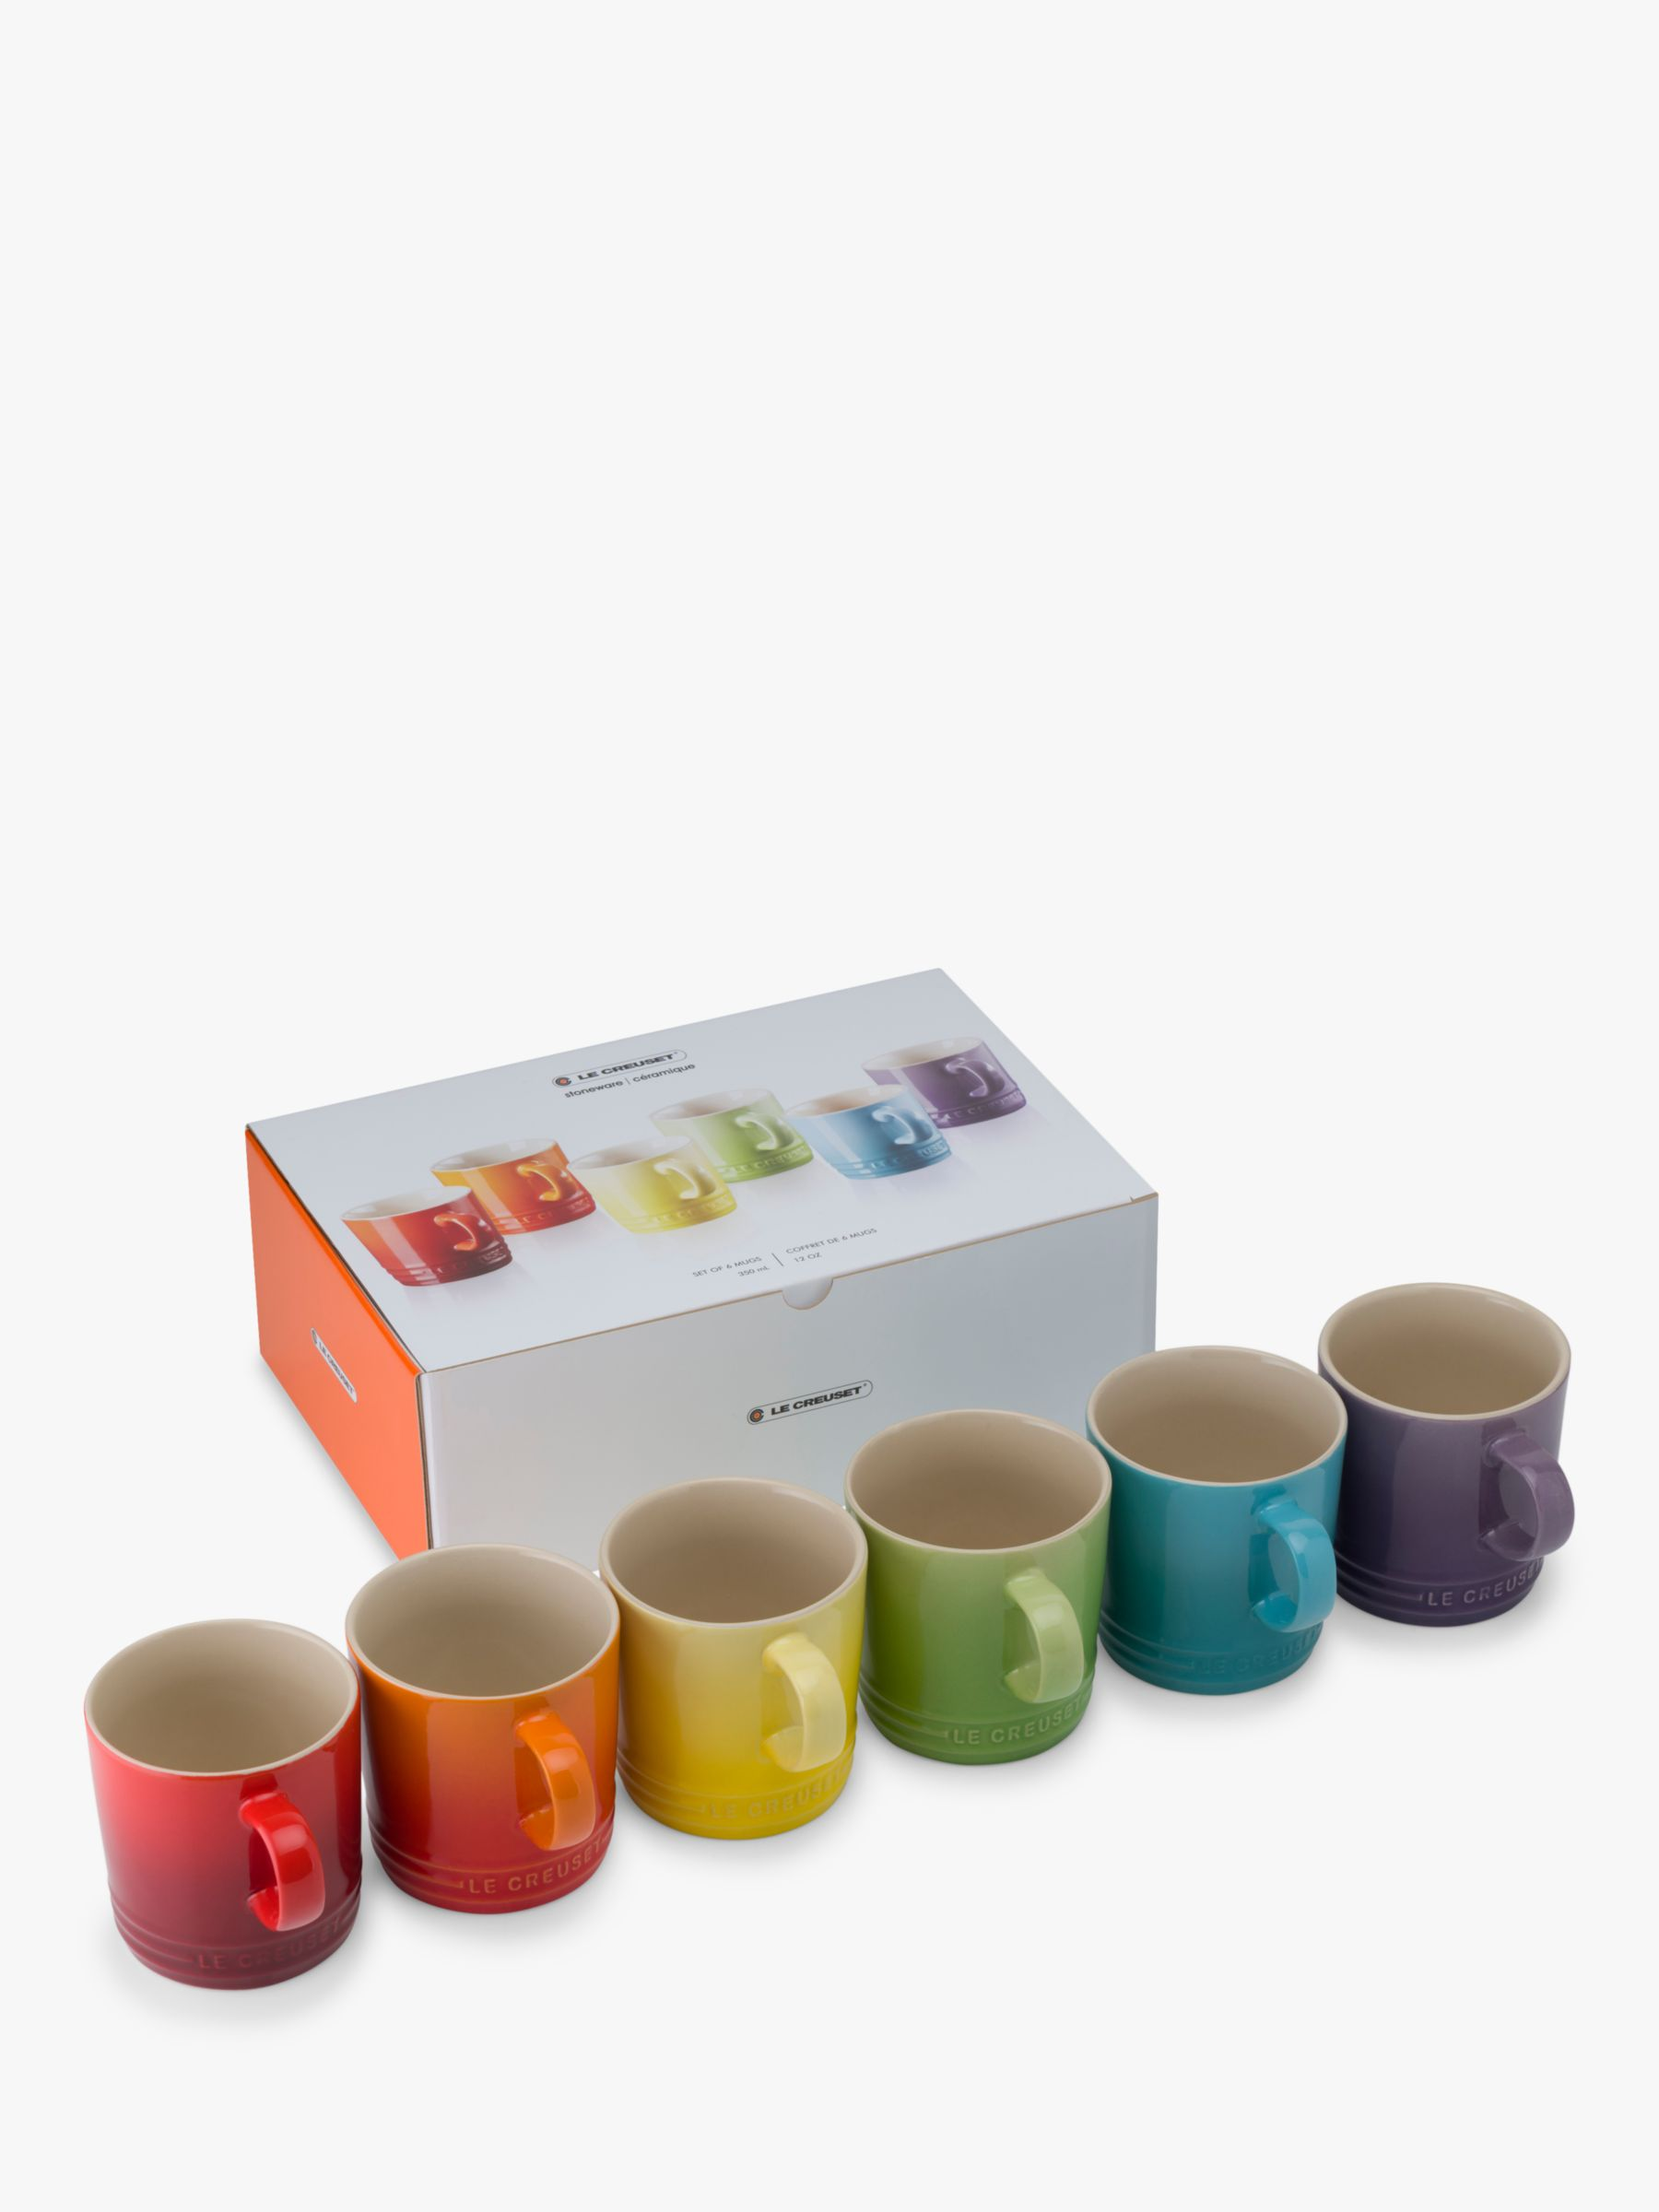 Le Creuset Le Creuset Stoneware Rainbow Mugs, 350ml, Set of 6, Assorted